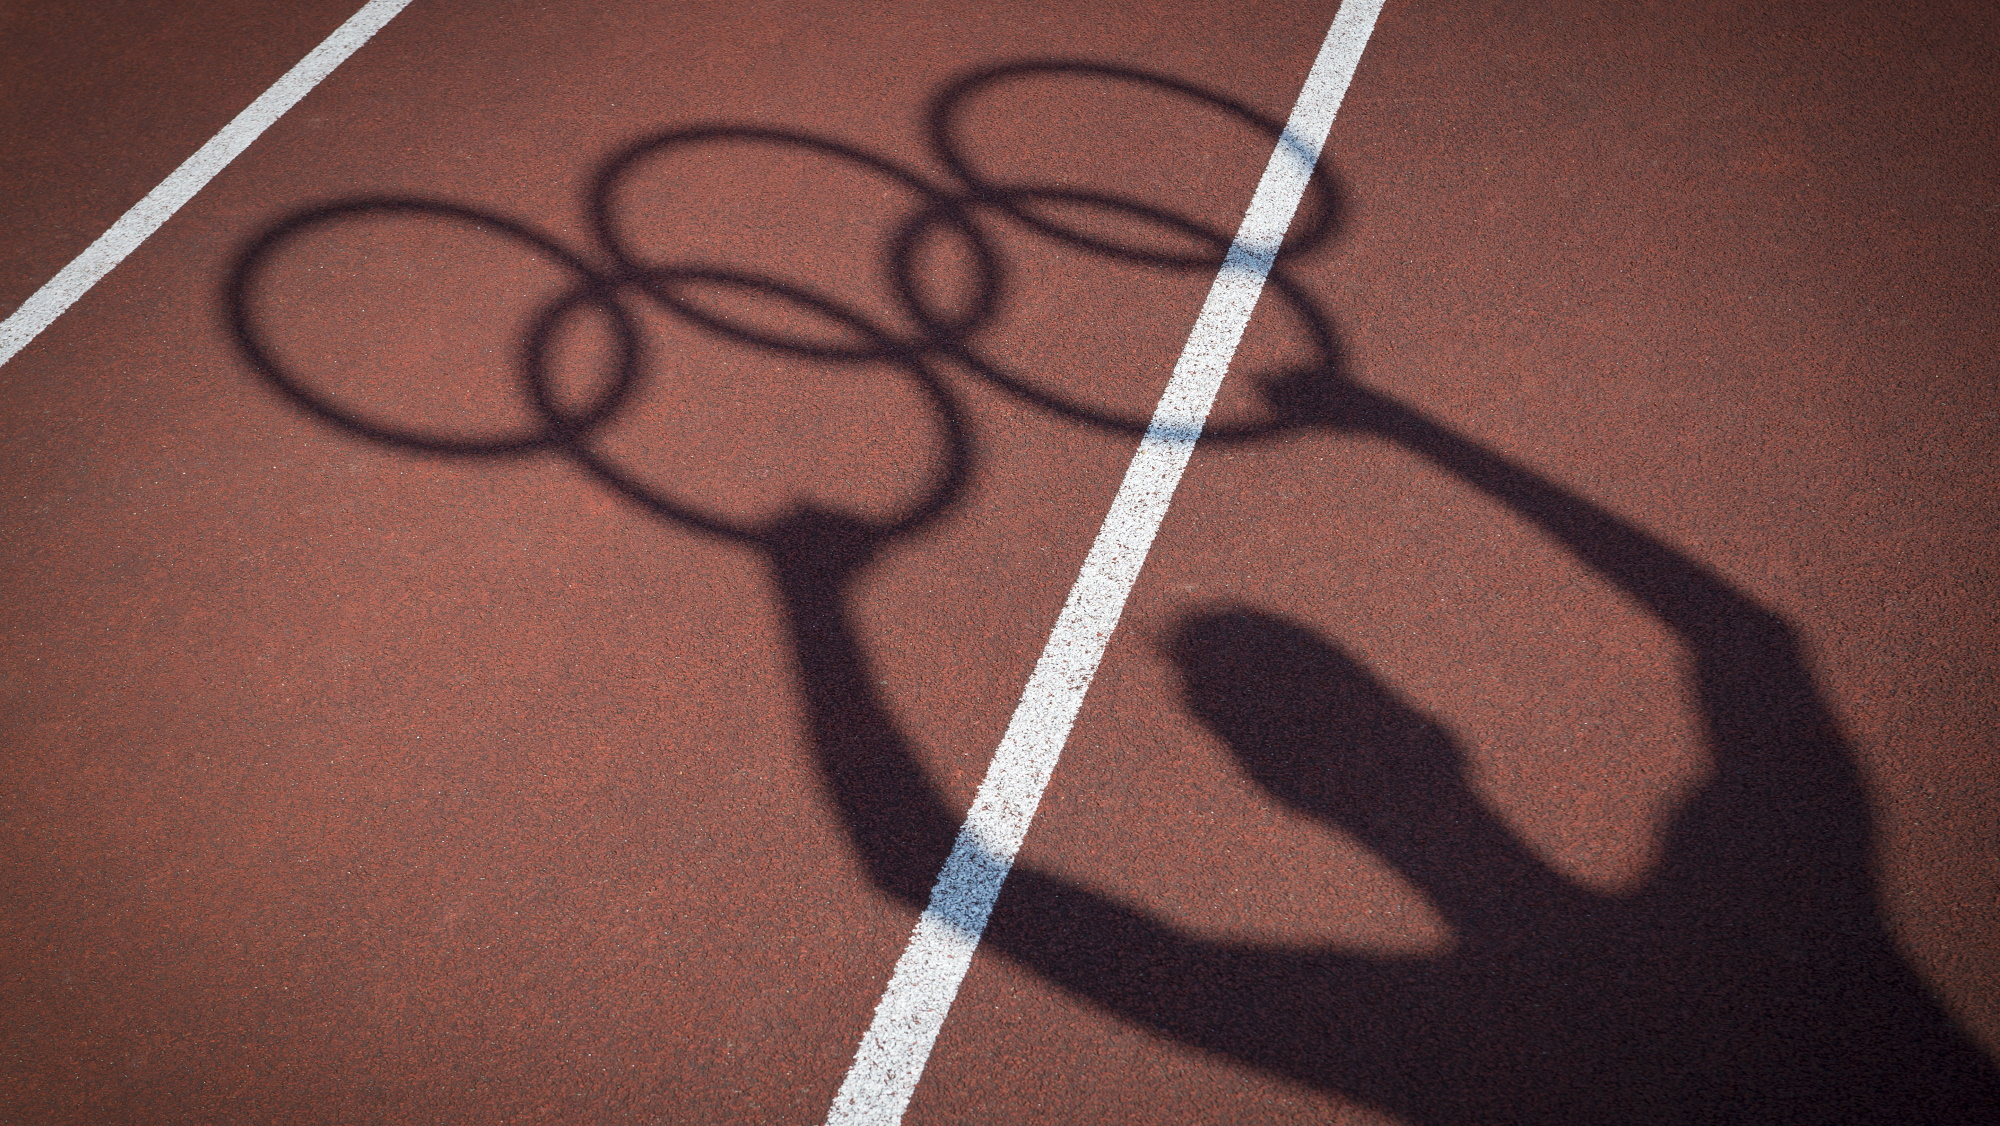 Shadow of man holding Olympic rings on athletics track